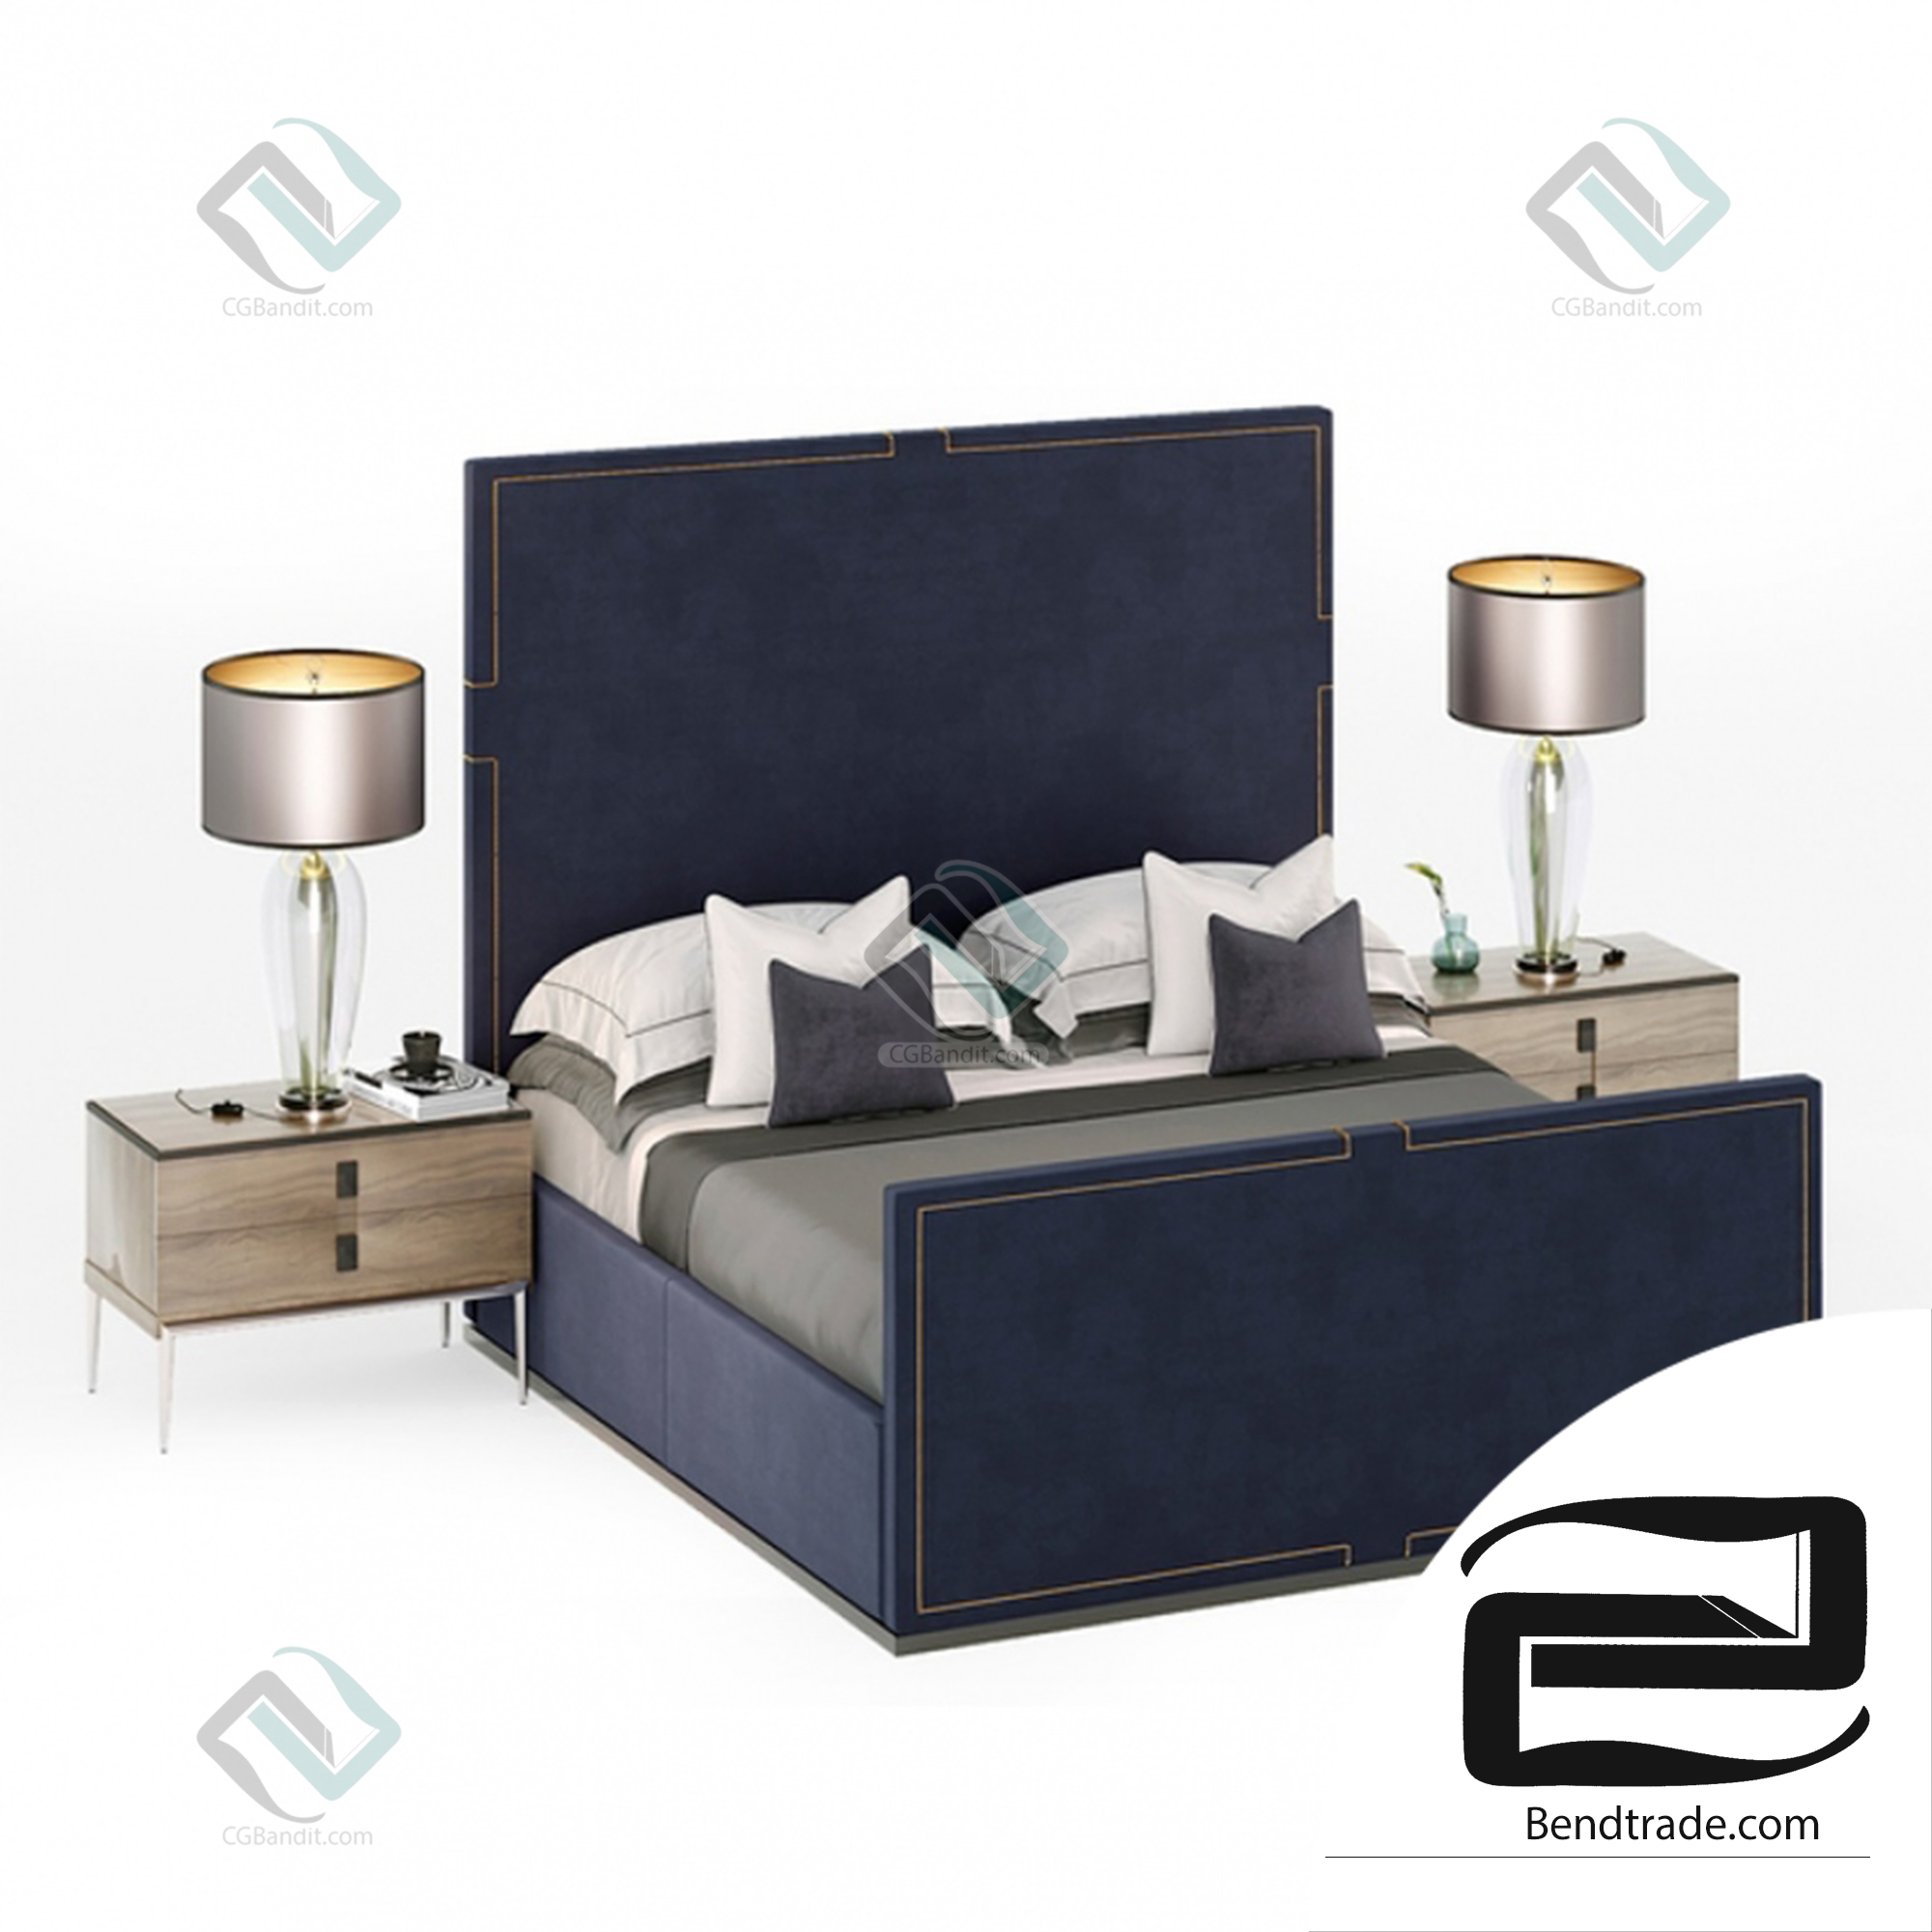 Bed - HOLLAND, The Sofa & Chair Company-Luxury bed